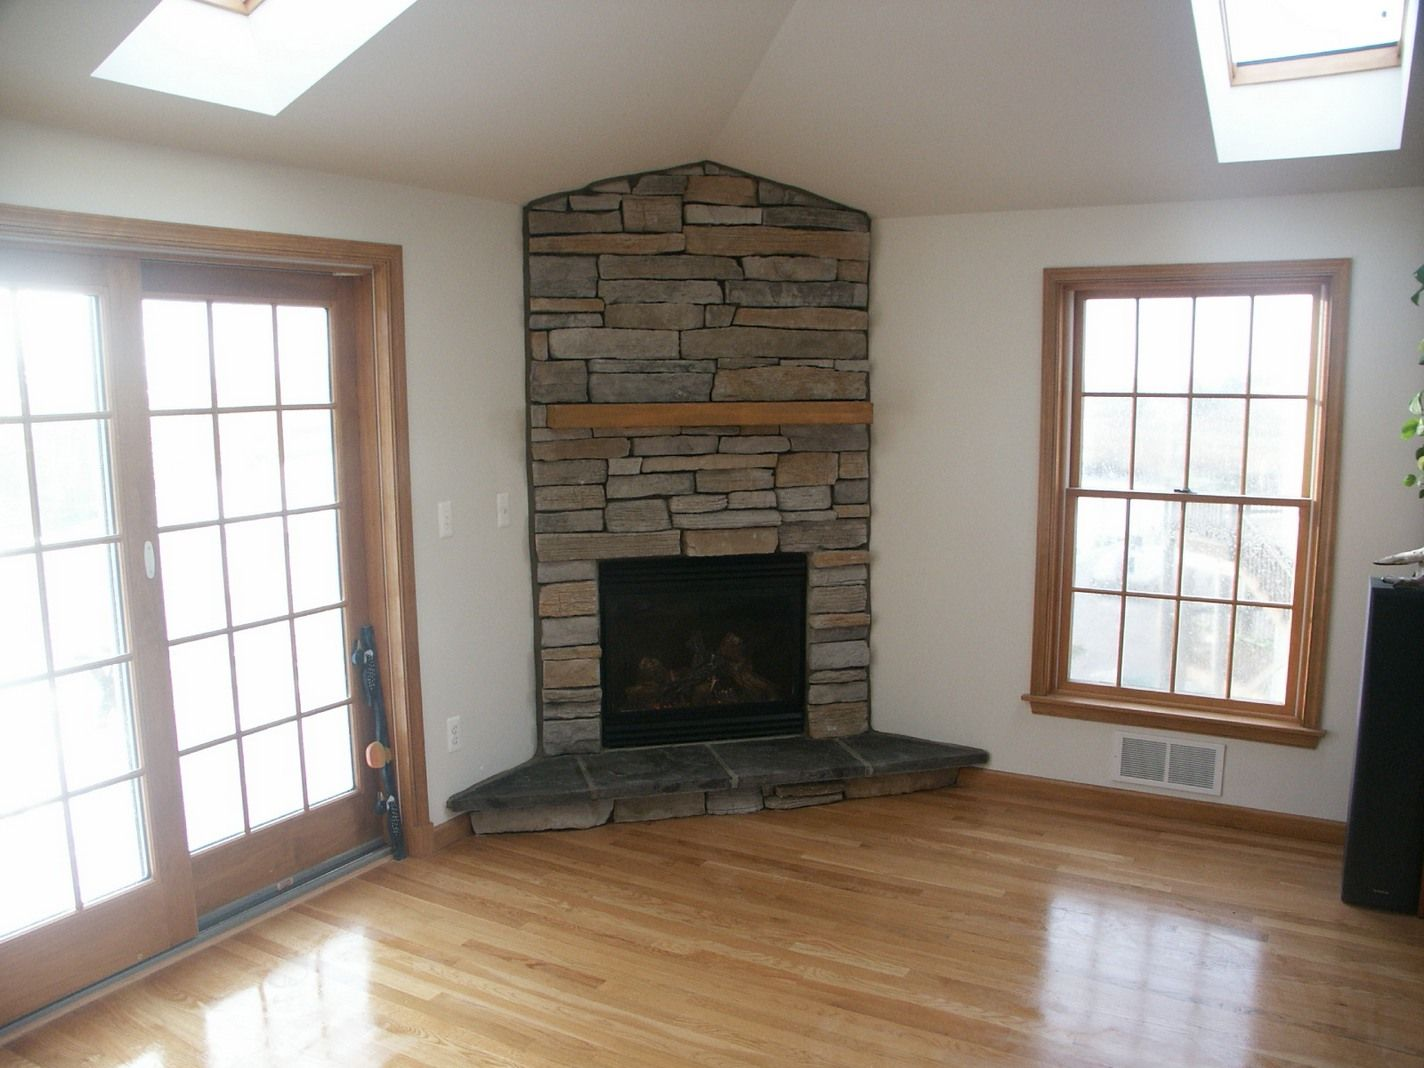 stonecornerfireplaces contemporary corner stone fireplaces designs ideas corner fireplaces